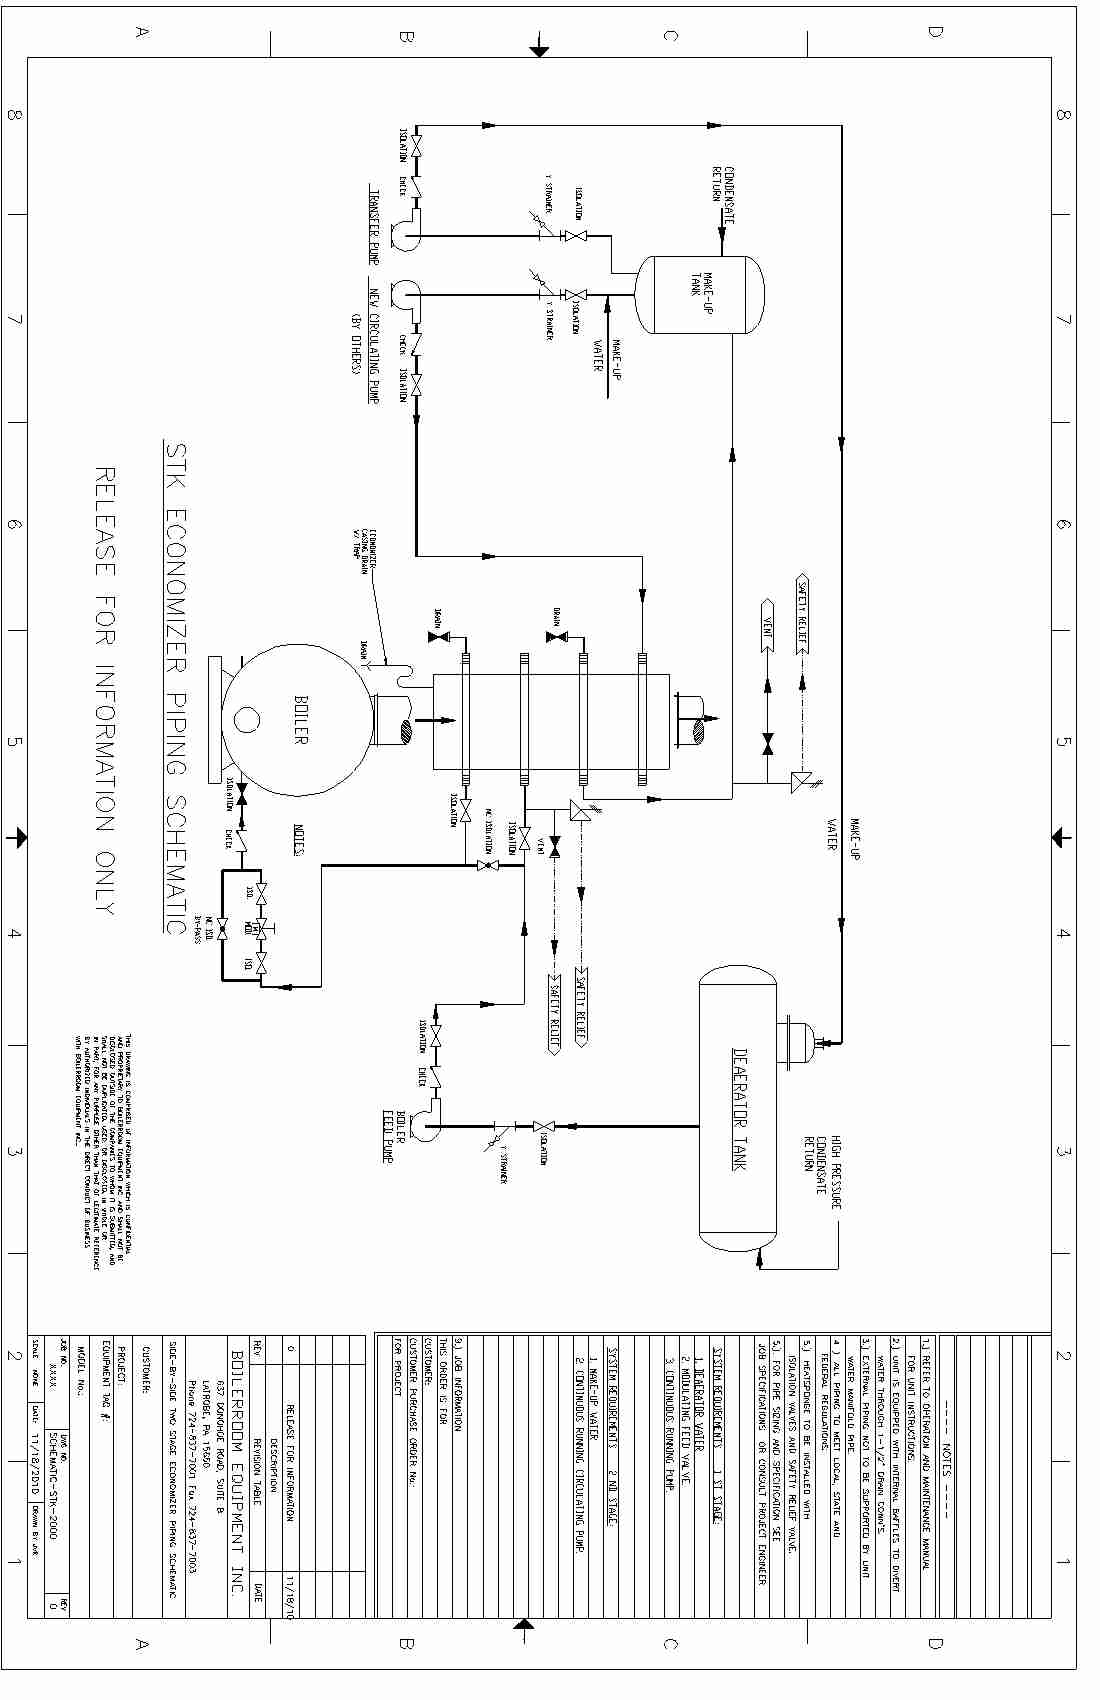 Warn Solenoid Wiring Diagram Free Download Schematic Diagrams Winches Xd9000i Winch Motor 2500